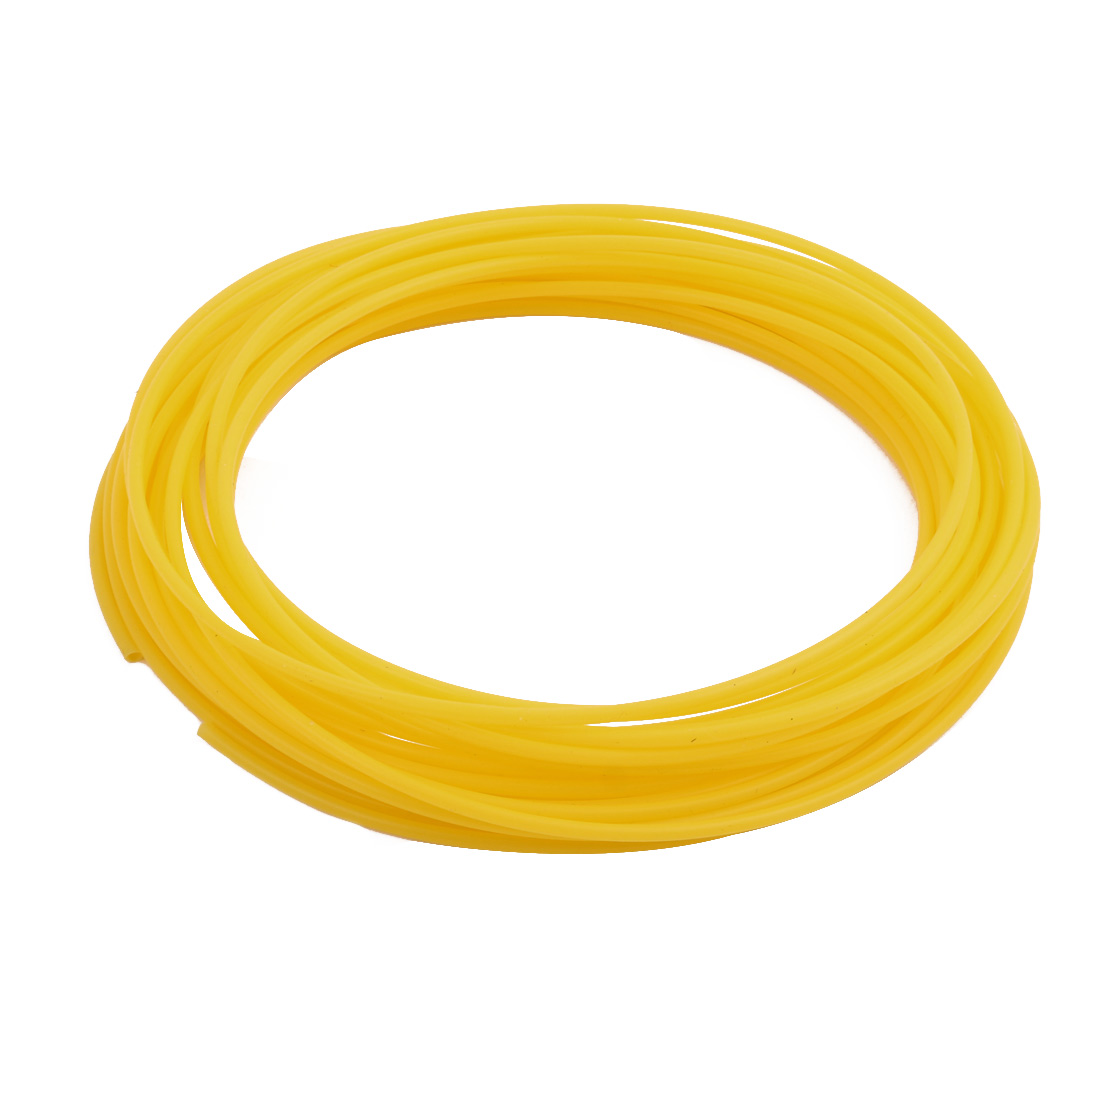 2.41mmx2.81mm PTFE Resistant High Temperature Yellow Tubing 10 Meters 32.8Ft